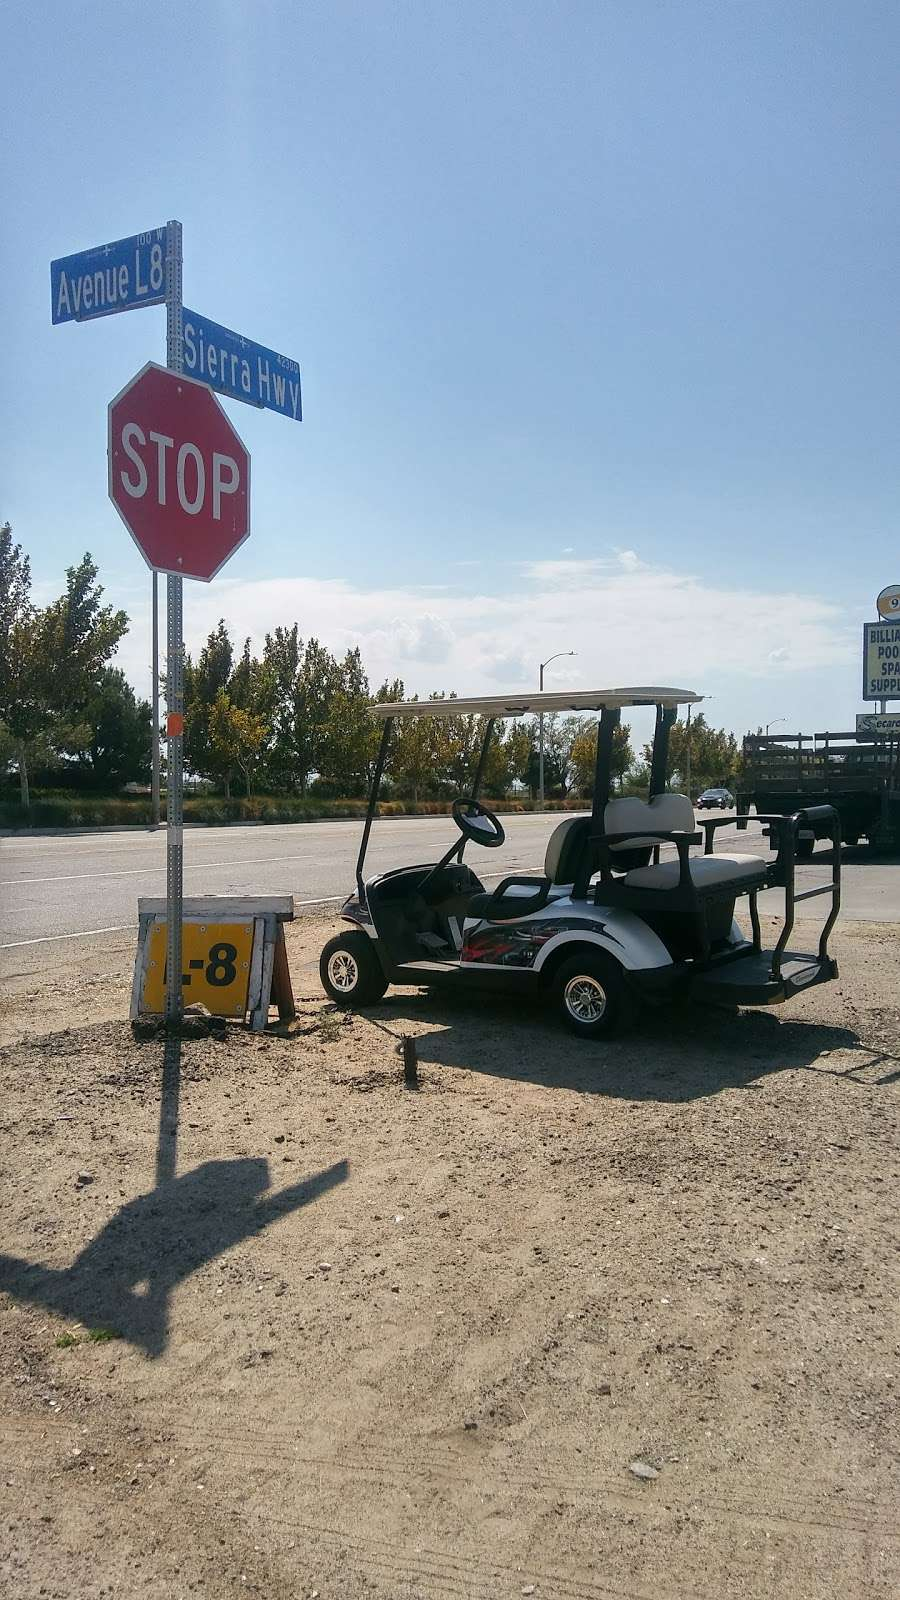 AV Golf Carts - store  | Photo 4 of 10 | Address: 231 W Ave L 8, Lancaster, CA 93534, USA | Phone: (661) 951-0454